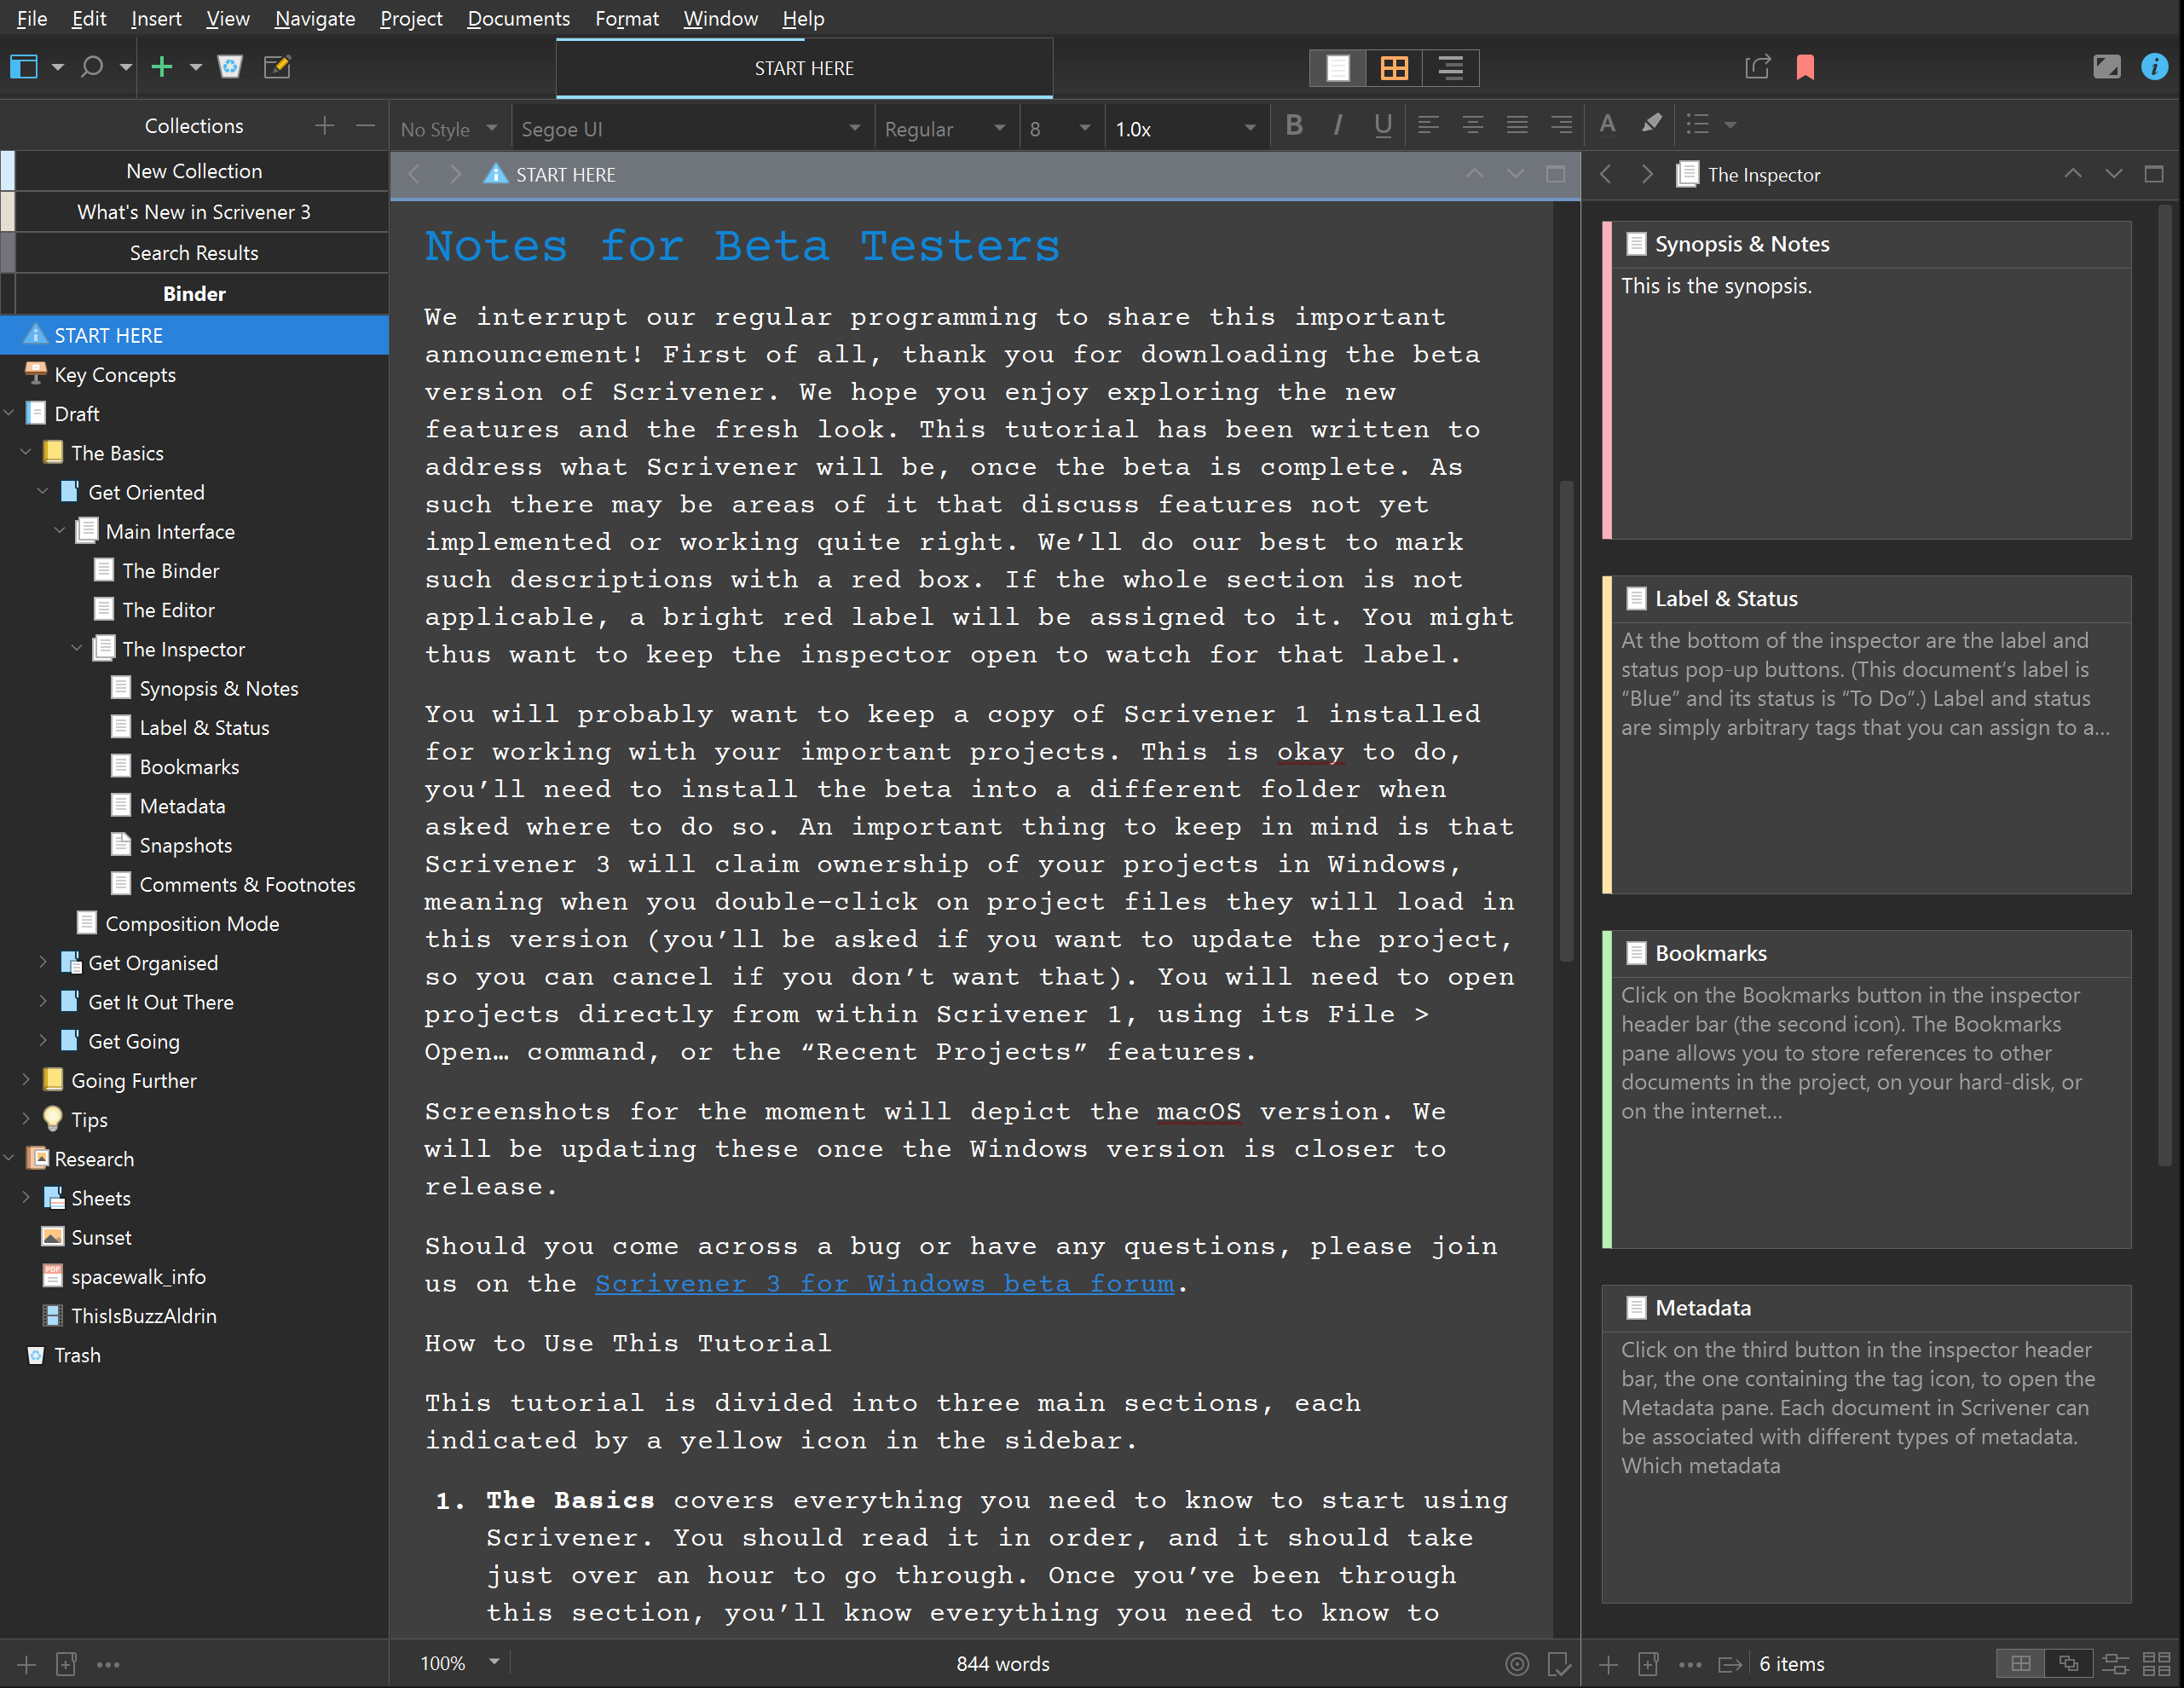 Scrivener 3 for Windows - Dark Mode